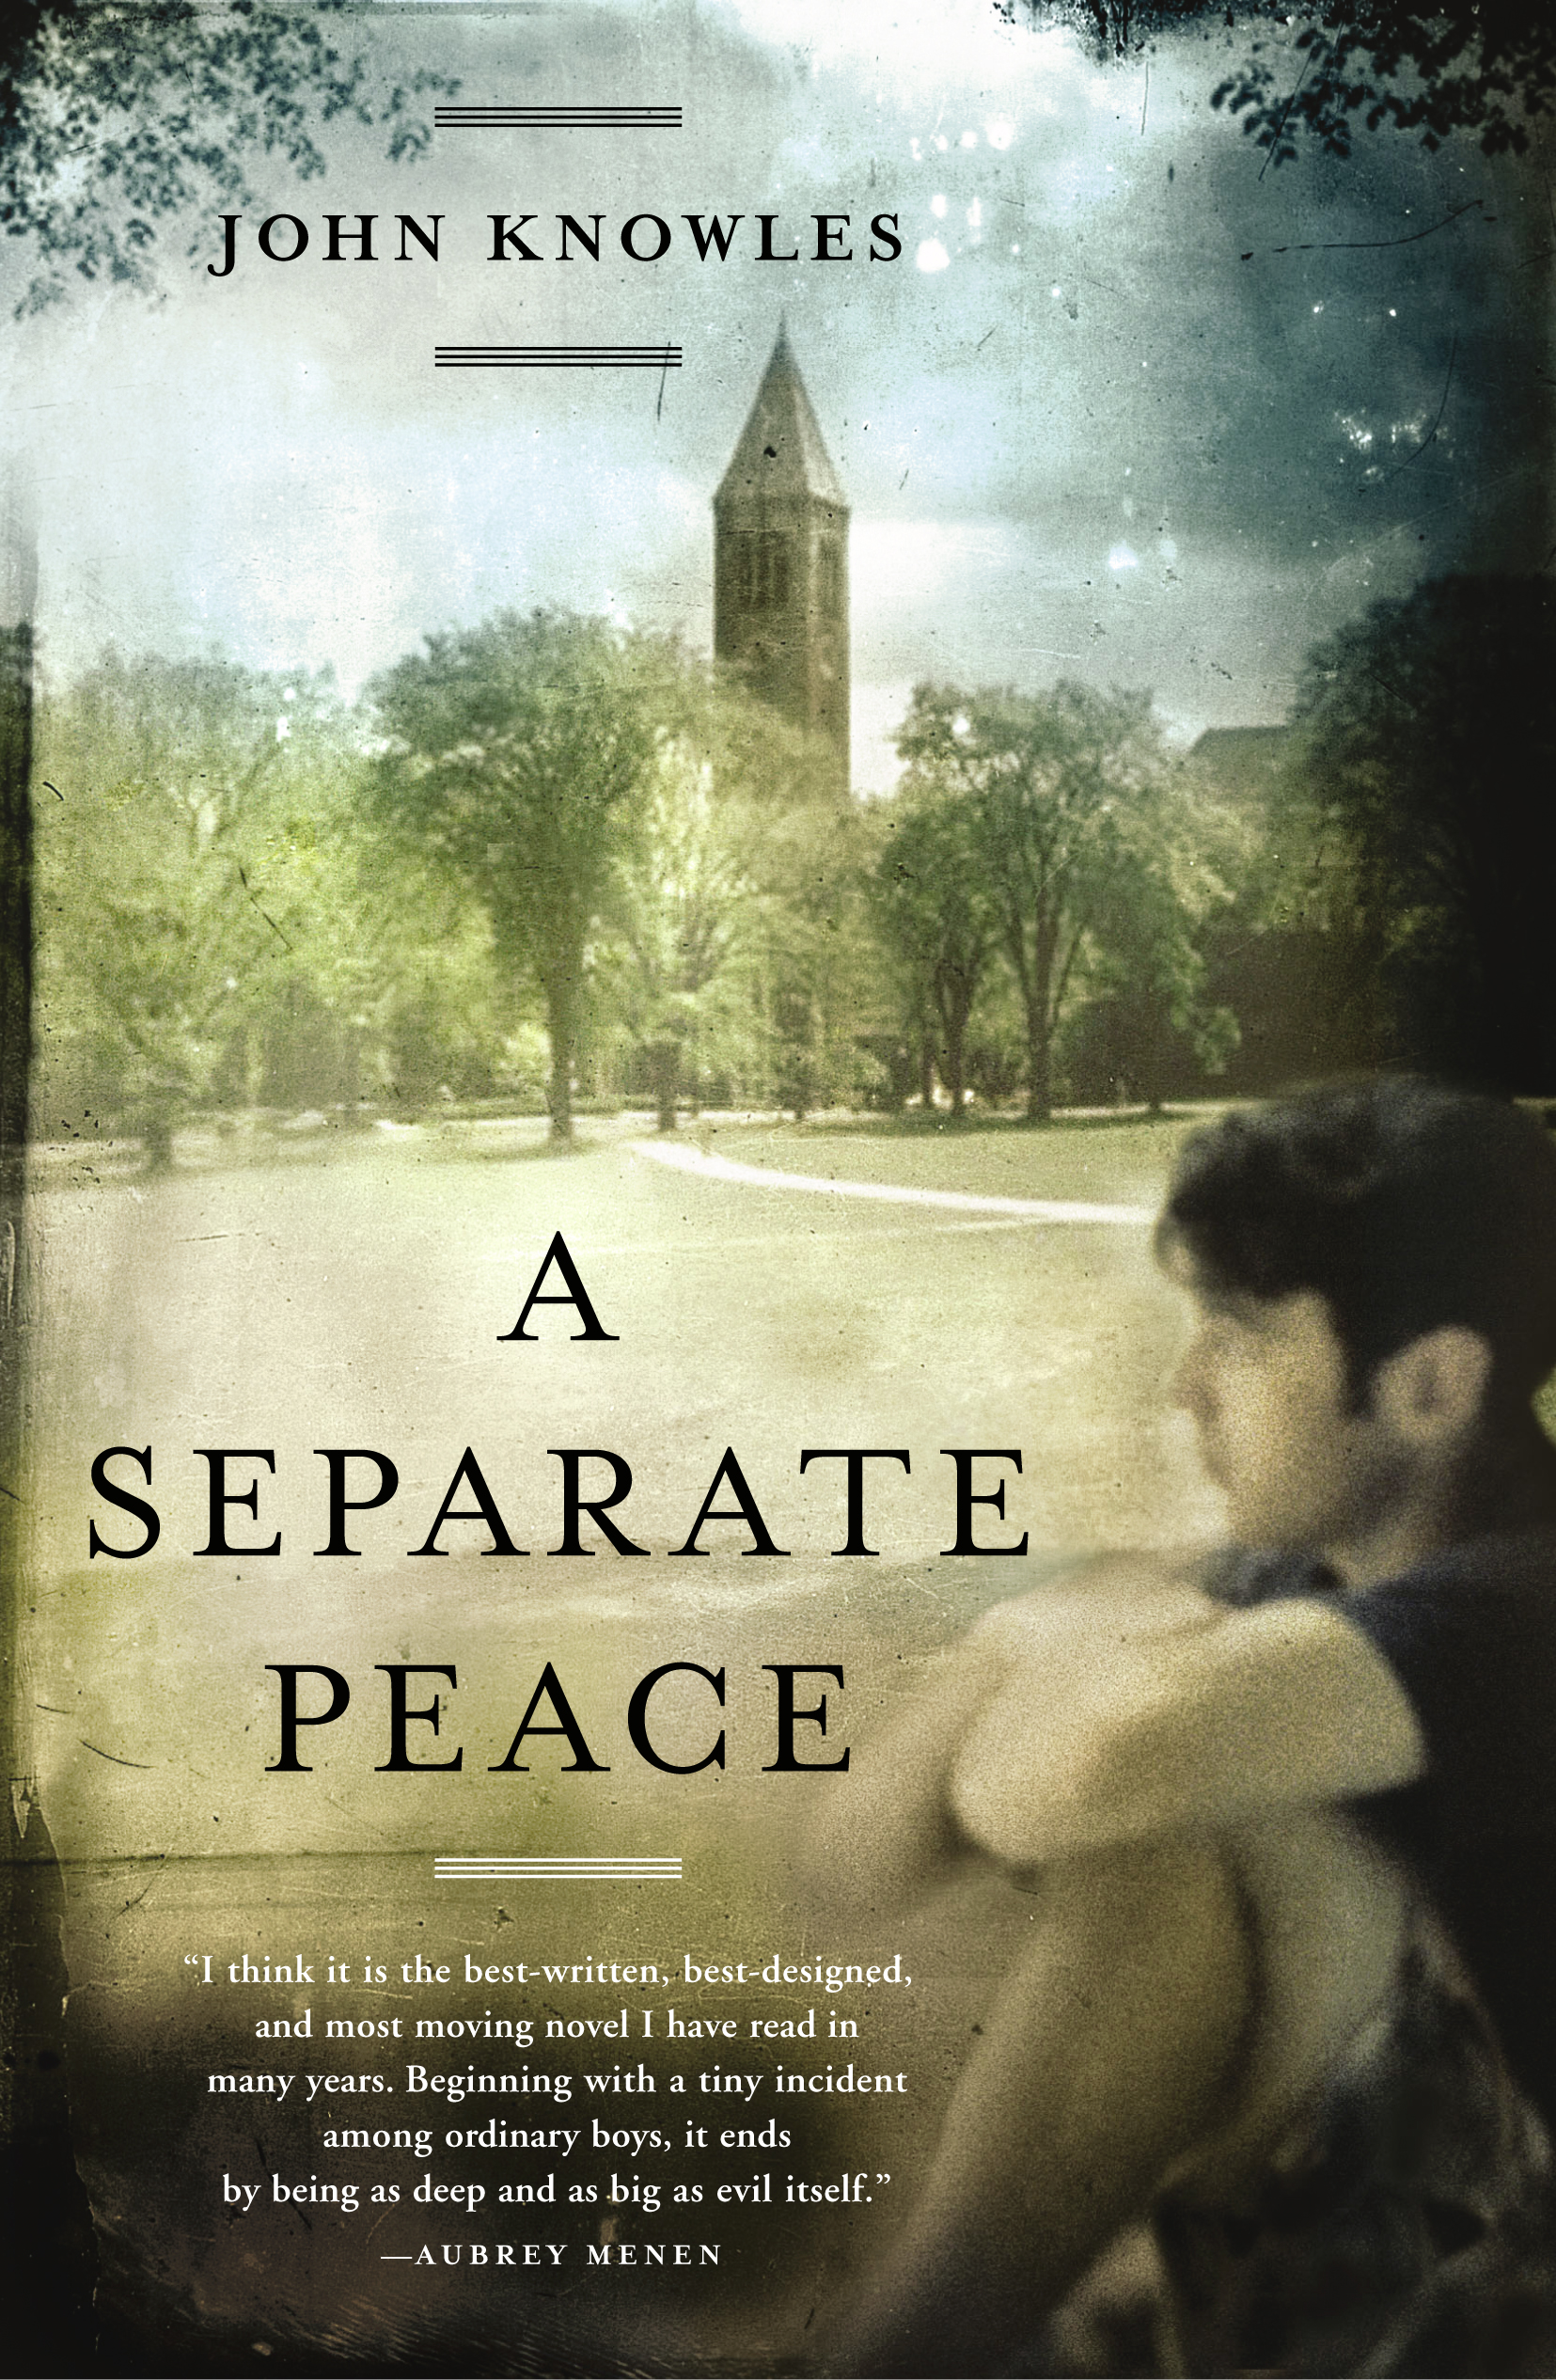 an analysis of genes journey in a separate peace a novel by john knowles Gene forrester's difficult journey towards maturity and the adult world is a main focus of the novel, a separate peace, by john knowles gene's journey begins the moment he pushes phineas from the tree and.